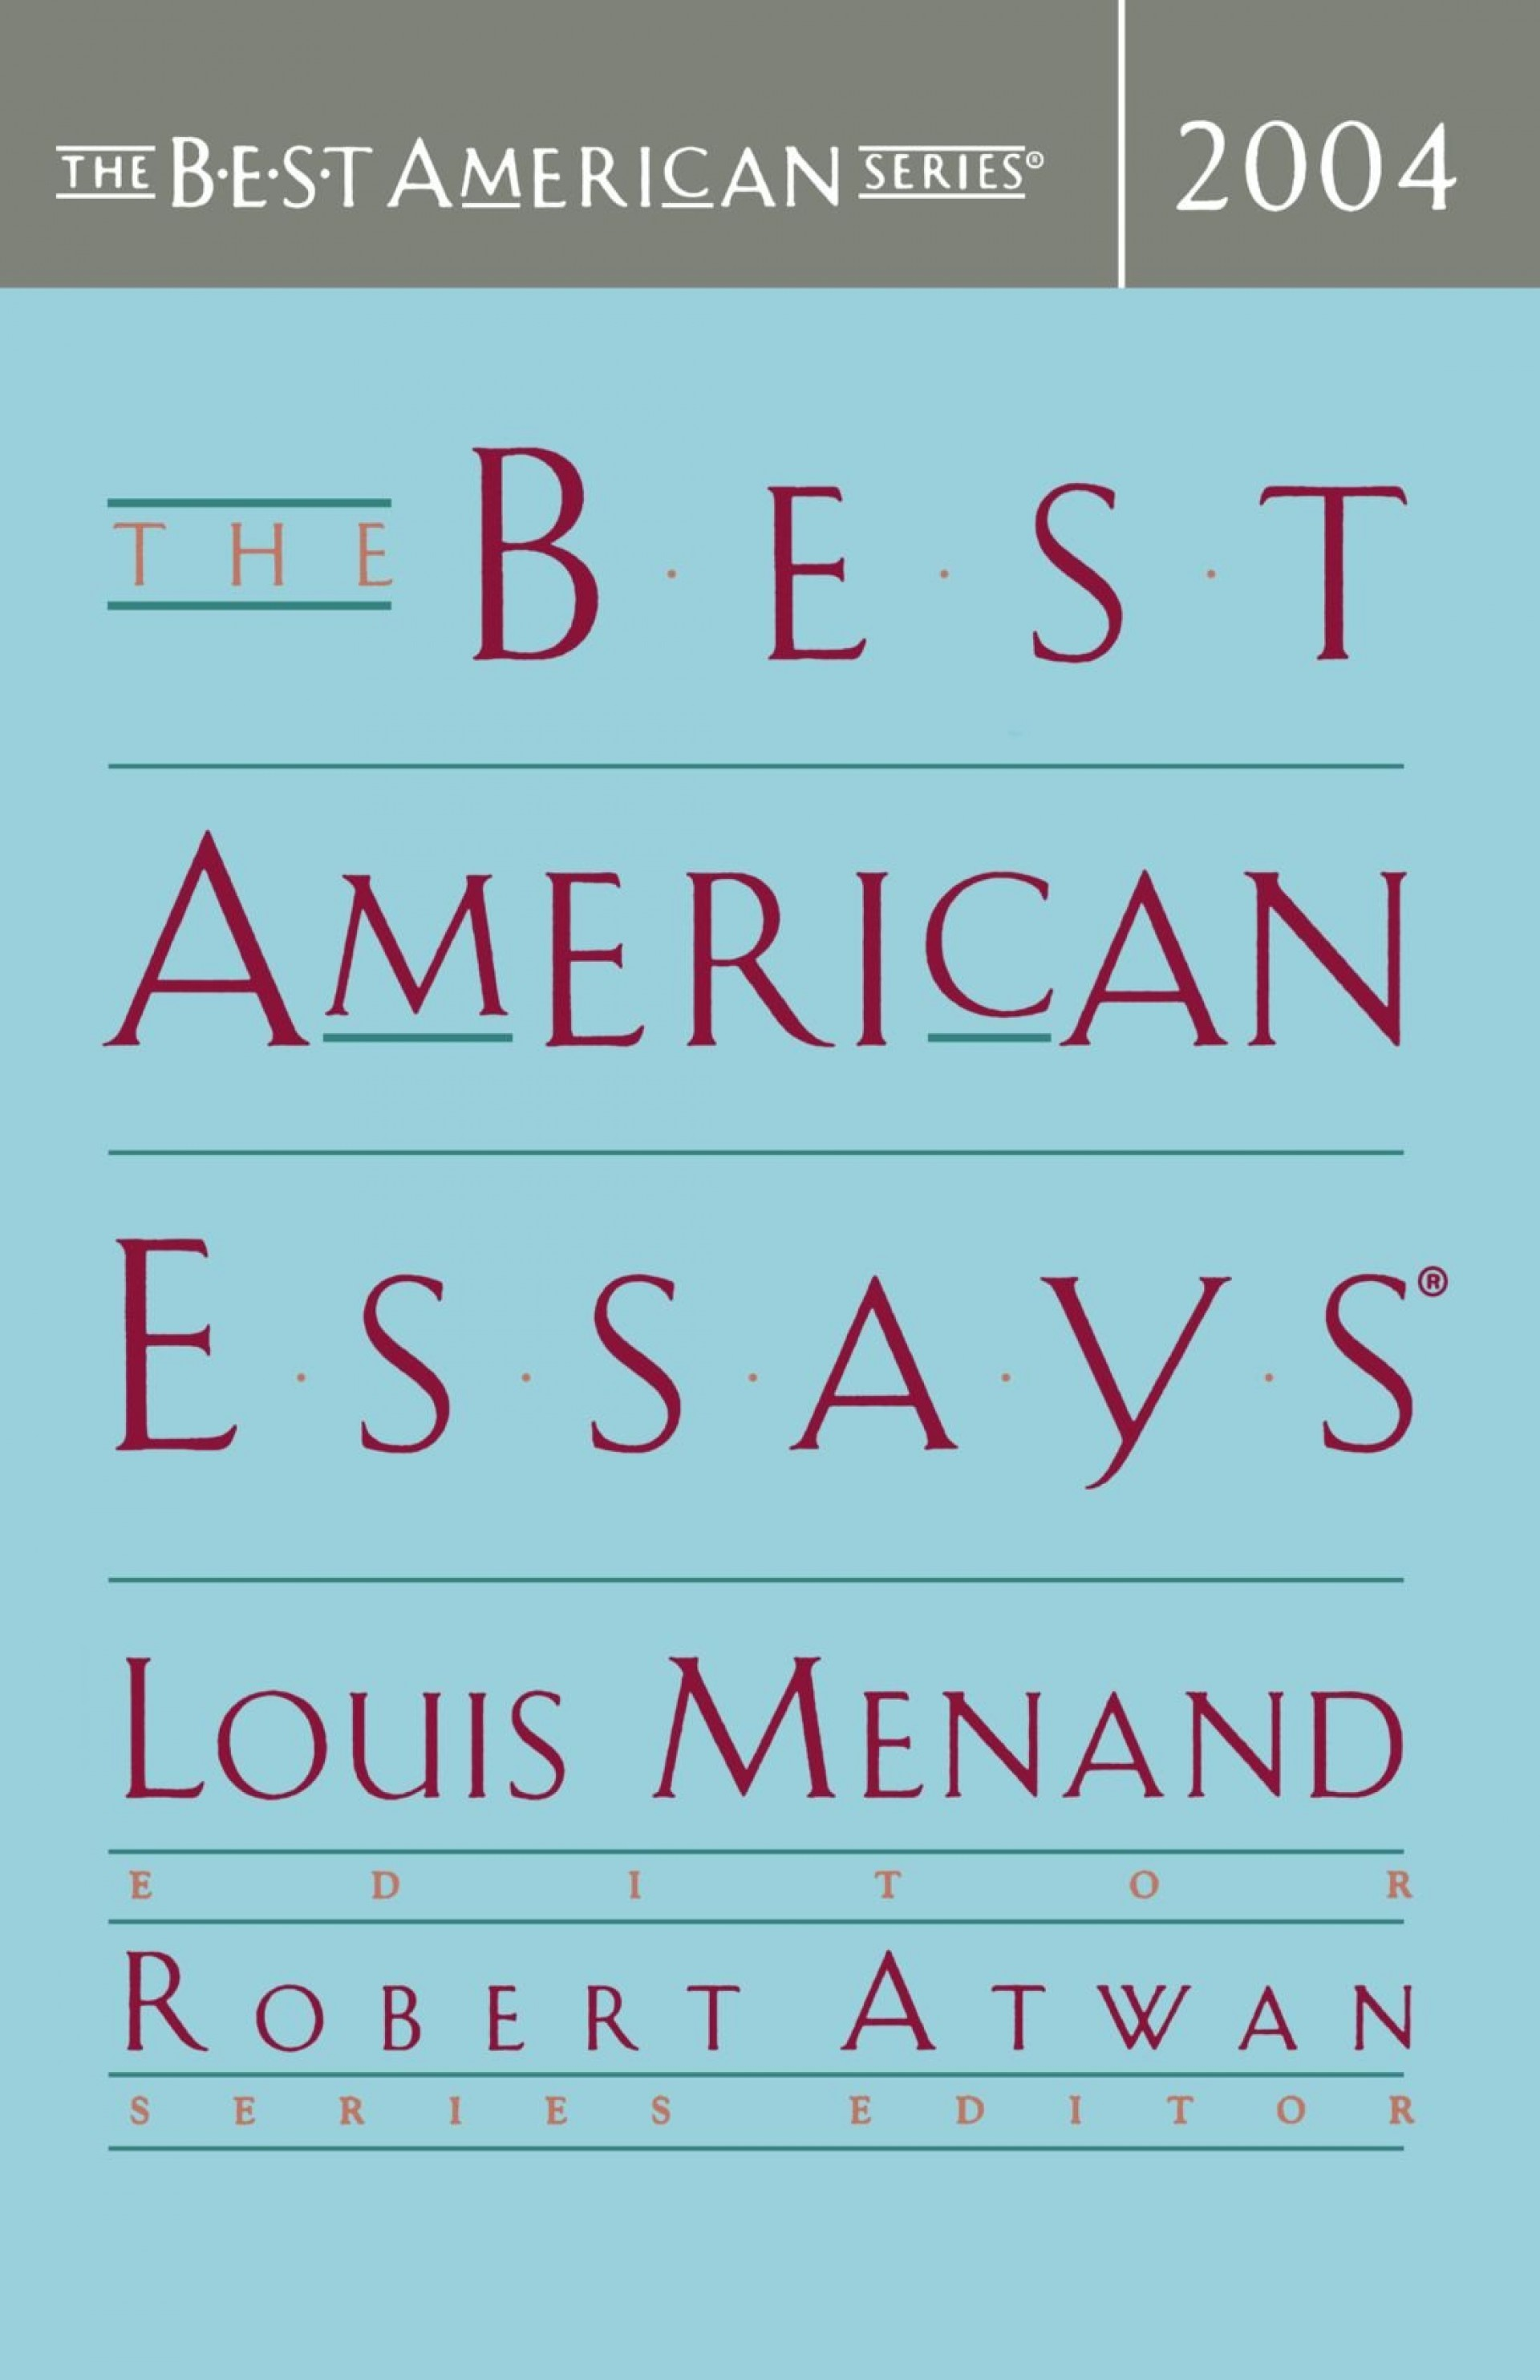 015 Essay Example The Best American Essays Wonderful Of Century Table Contents 2013 Pdf Download 1920